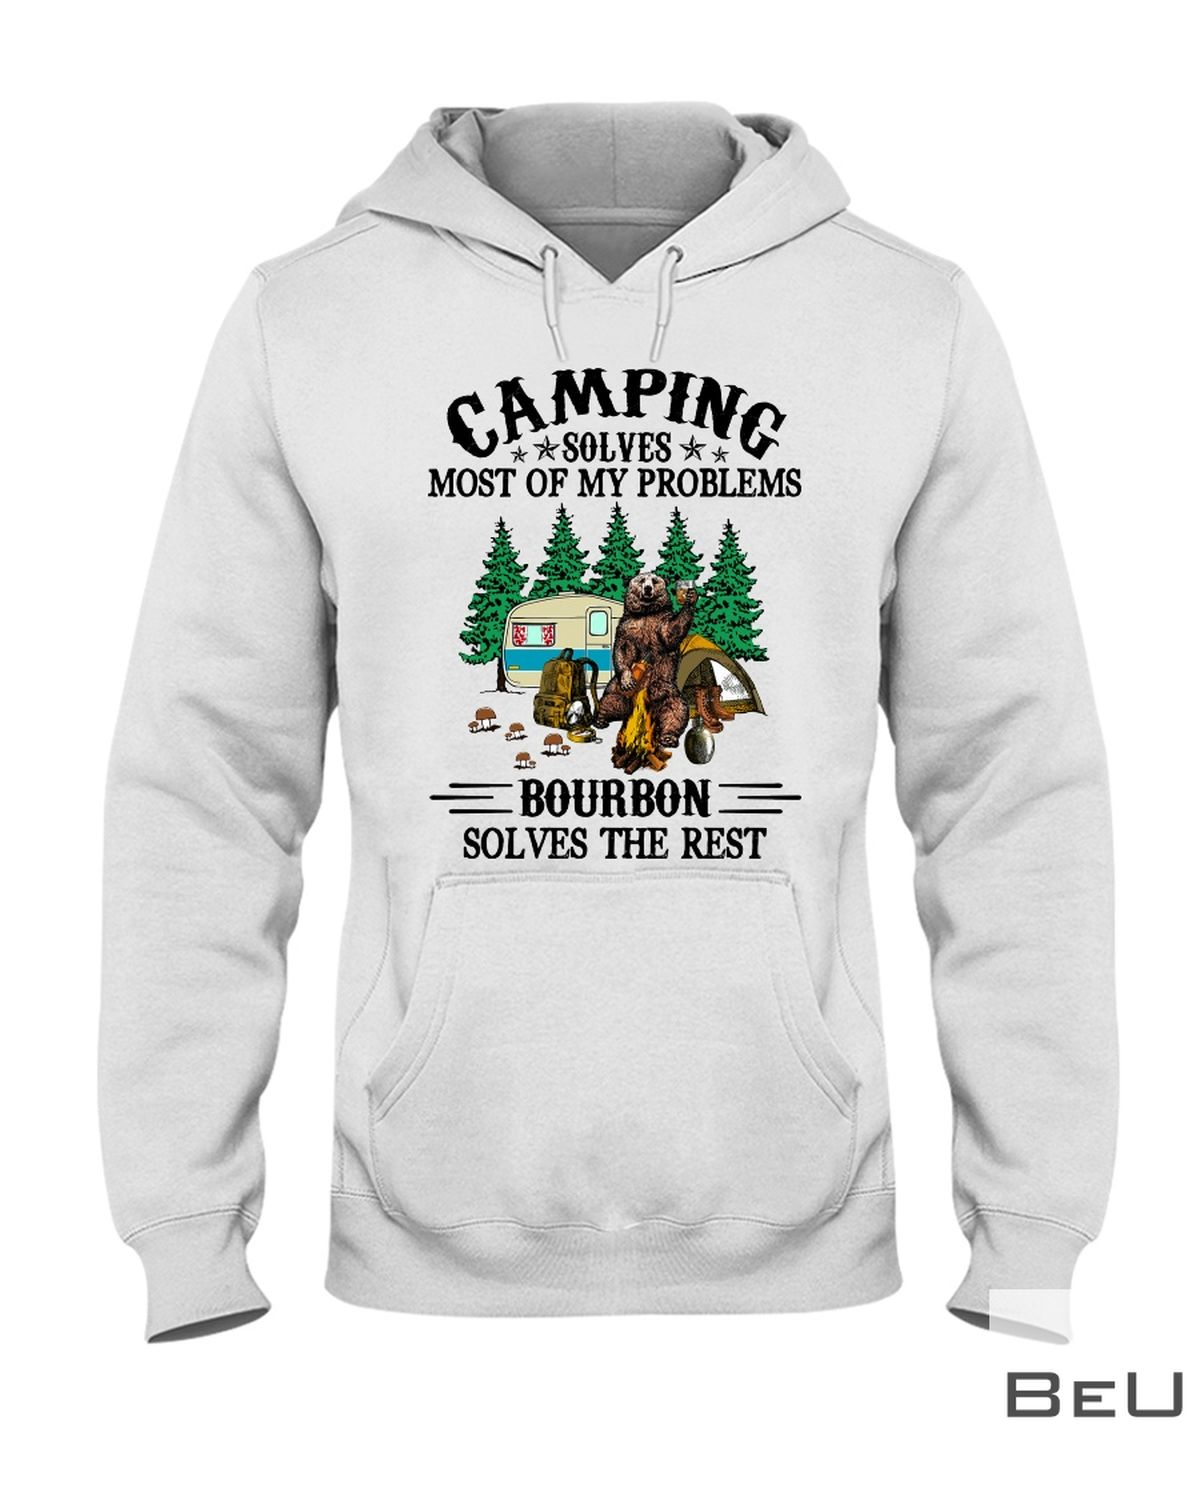 Camping Solves Most Of My Problems - Bourbon Solves The Rest Shirtz